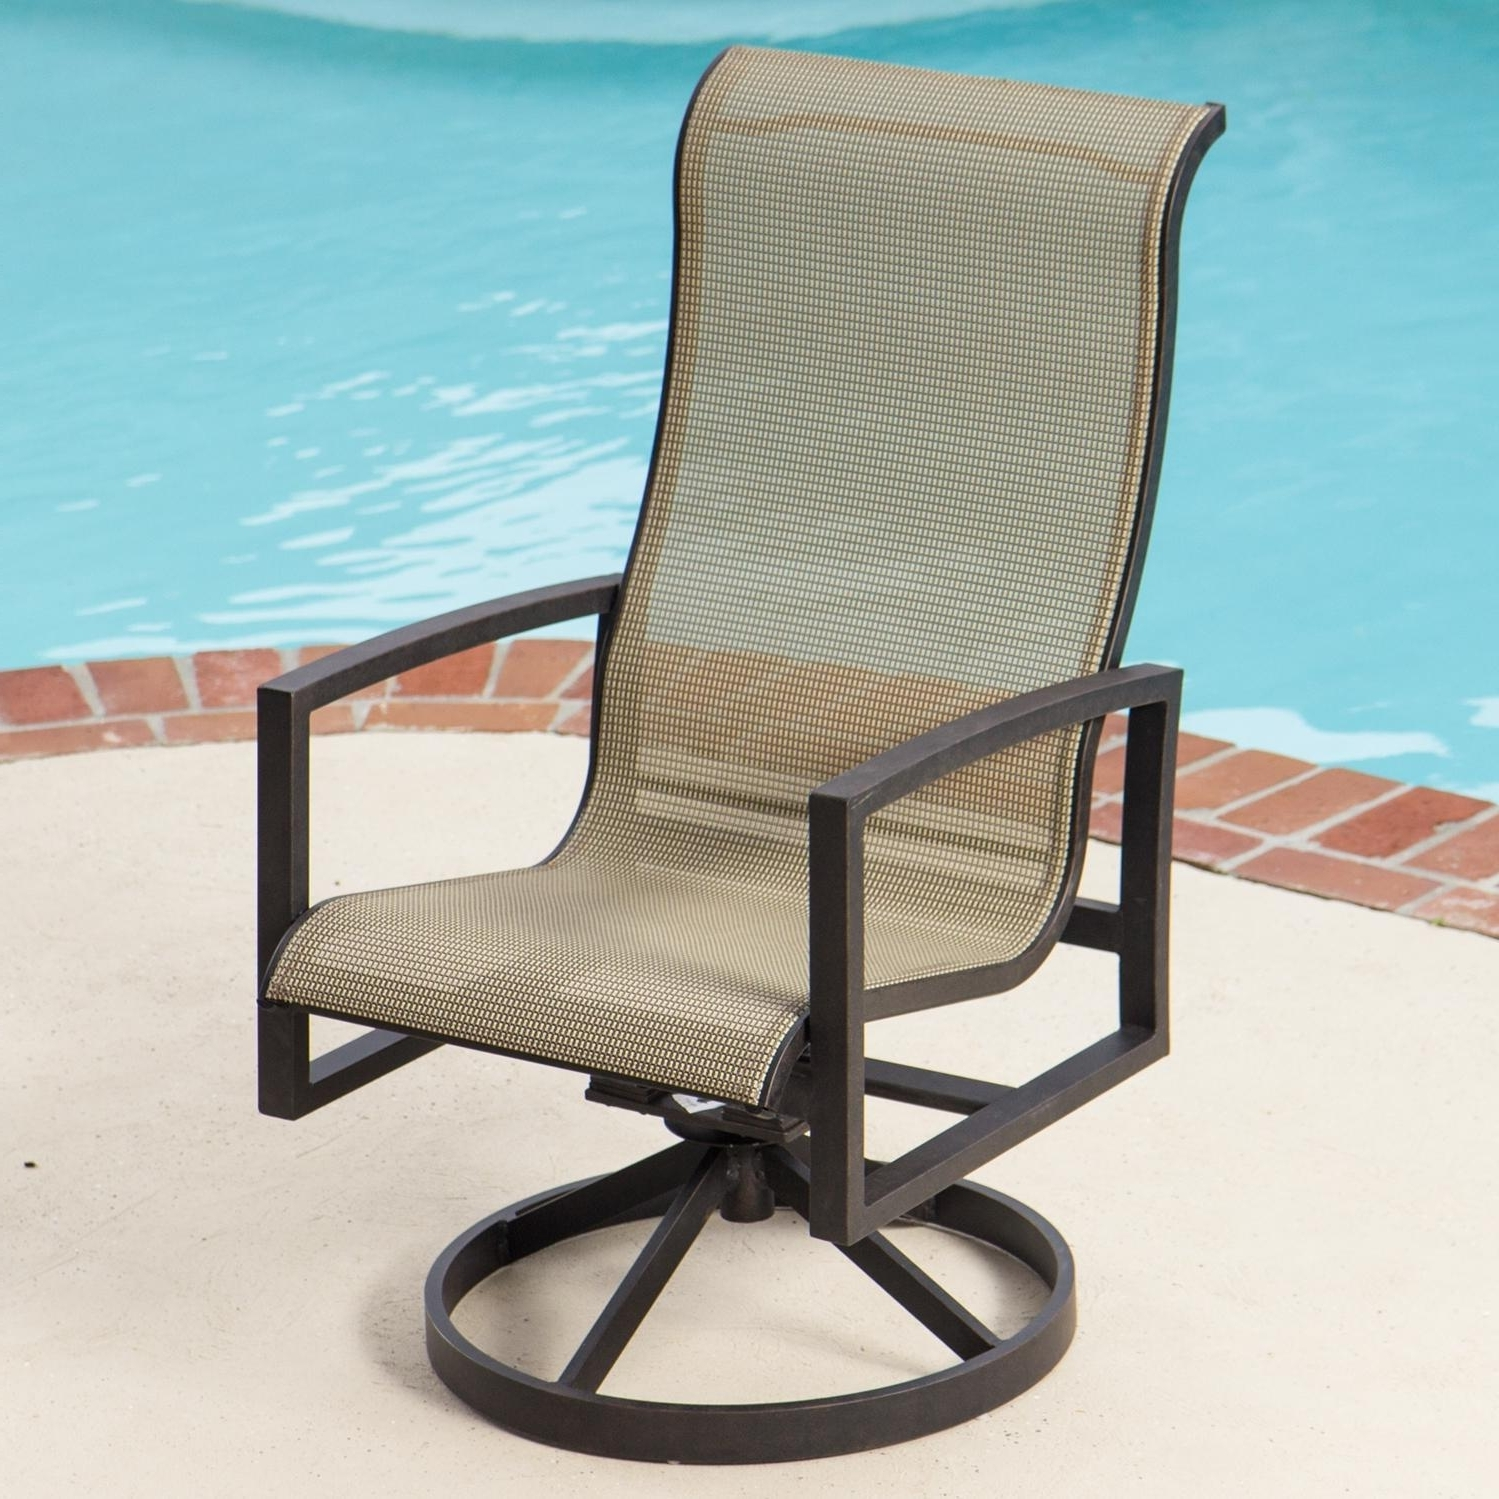 Popular Acadia Sling Patio Swivel Rocker Dining Chairlakeview Outdoor Pertaining To Modern Patio Rocking Chairs (View 17 of 20)